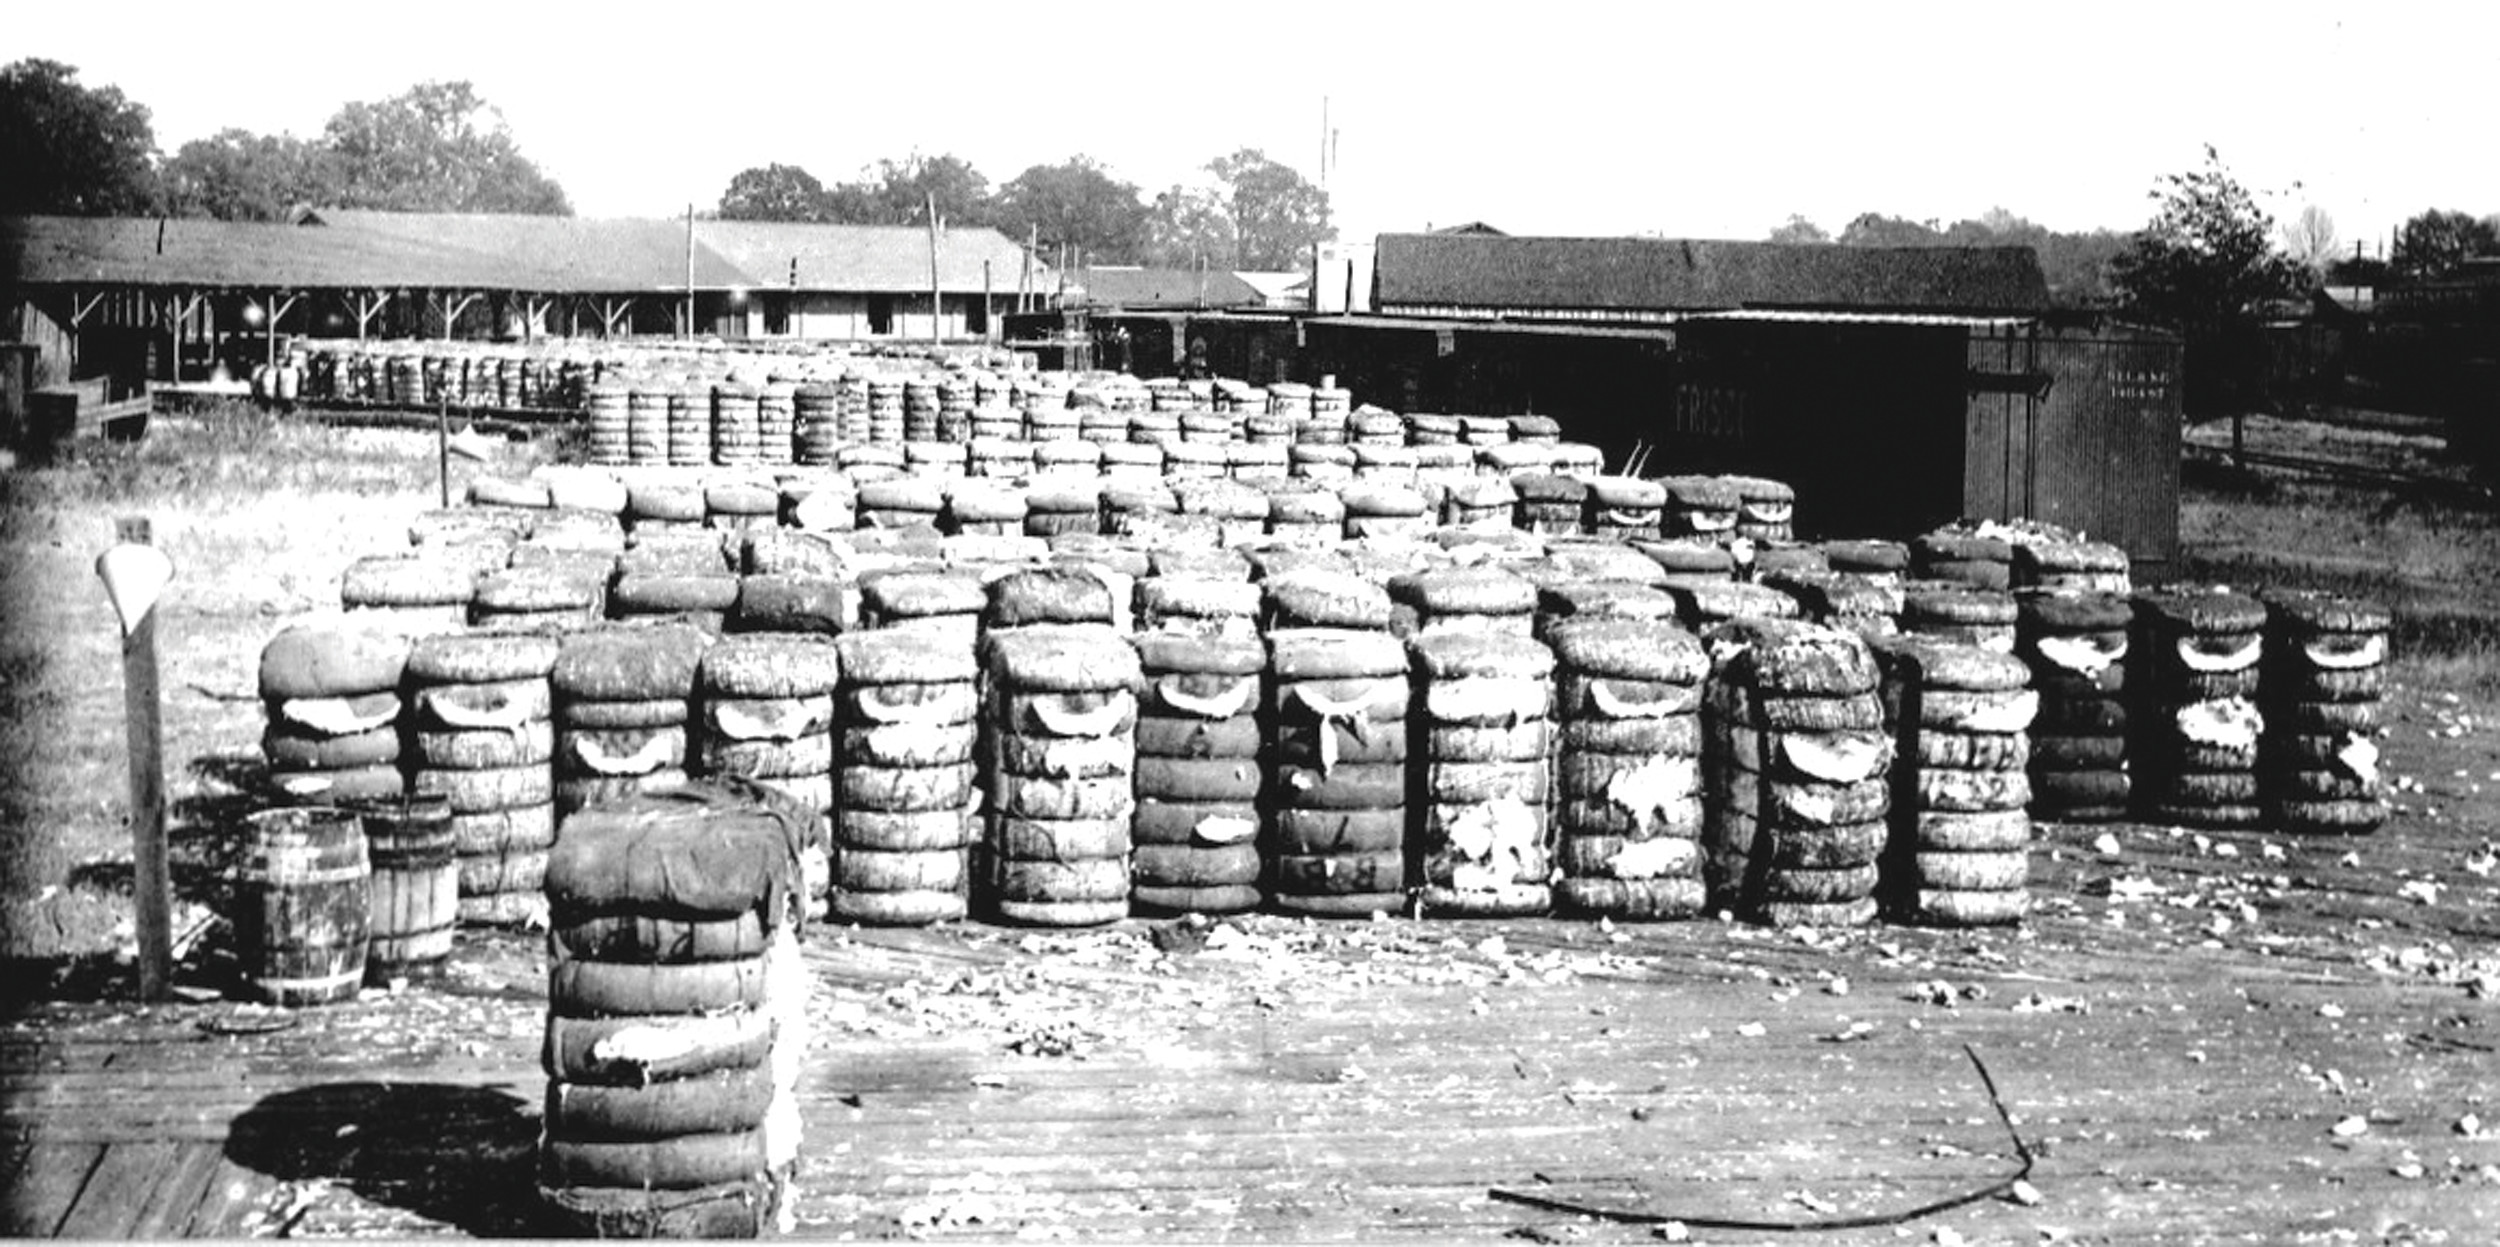 Bales of cotton are seen.